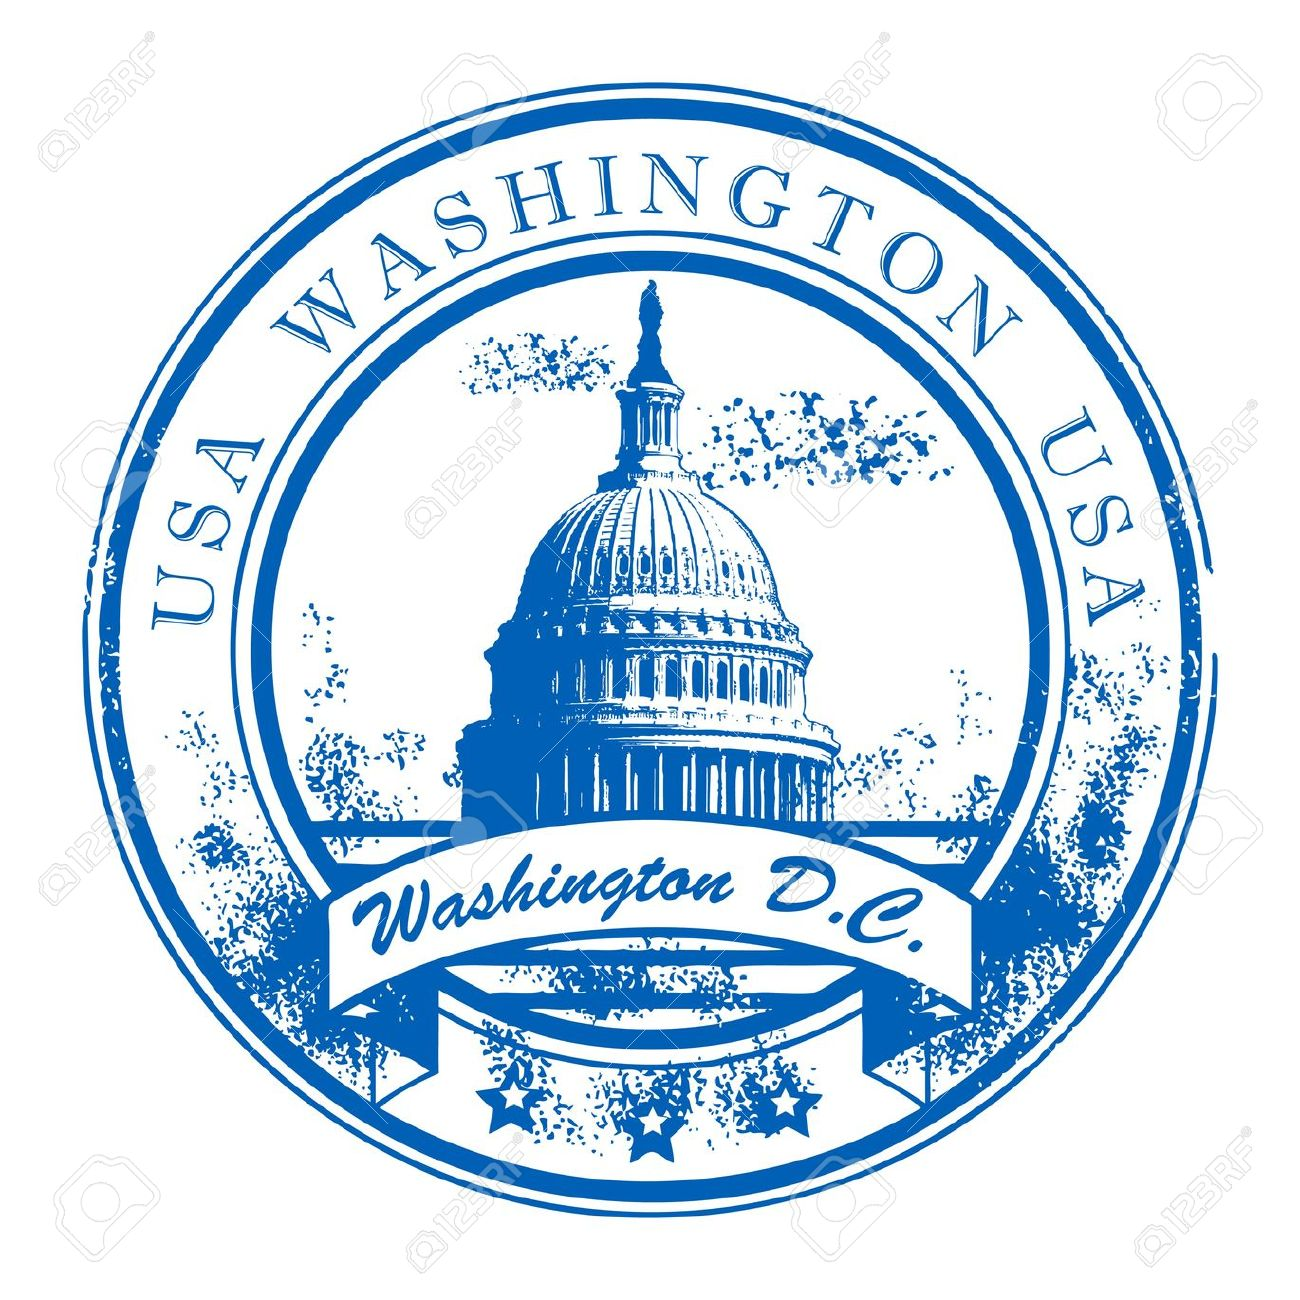 Washington d c clipart - Clipground